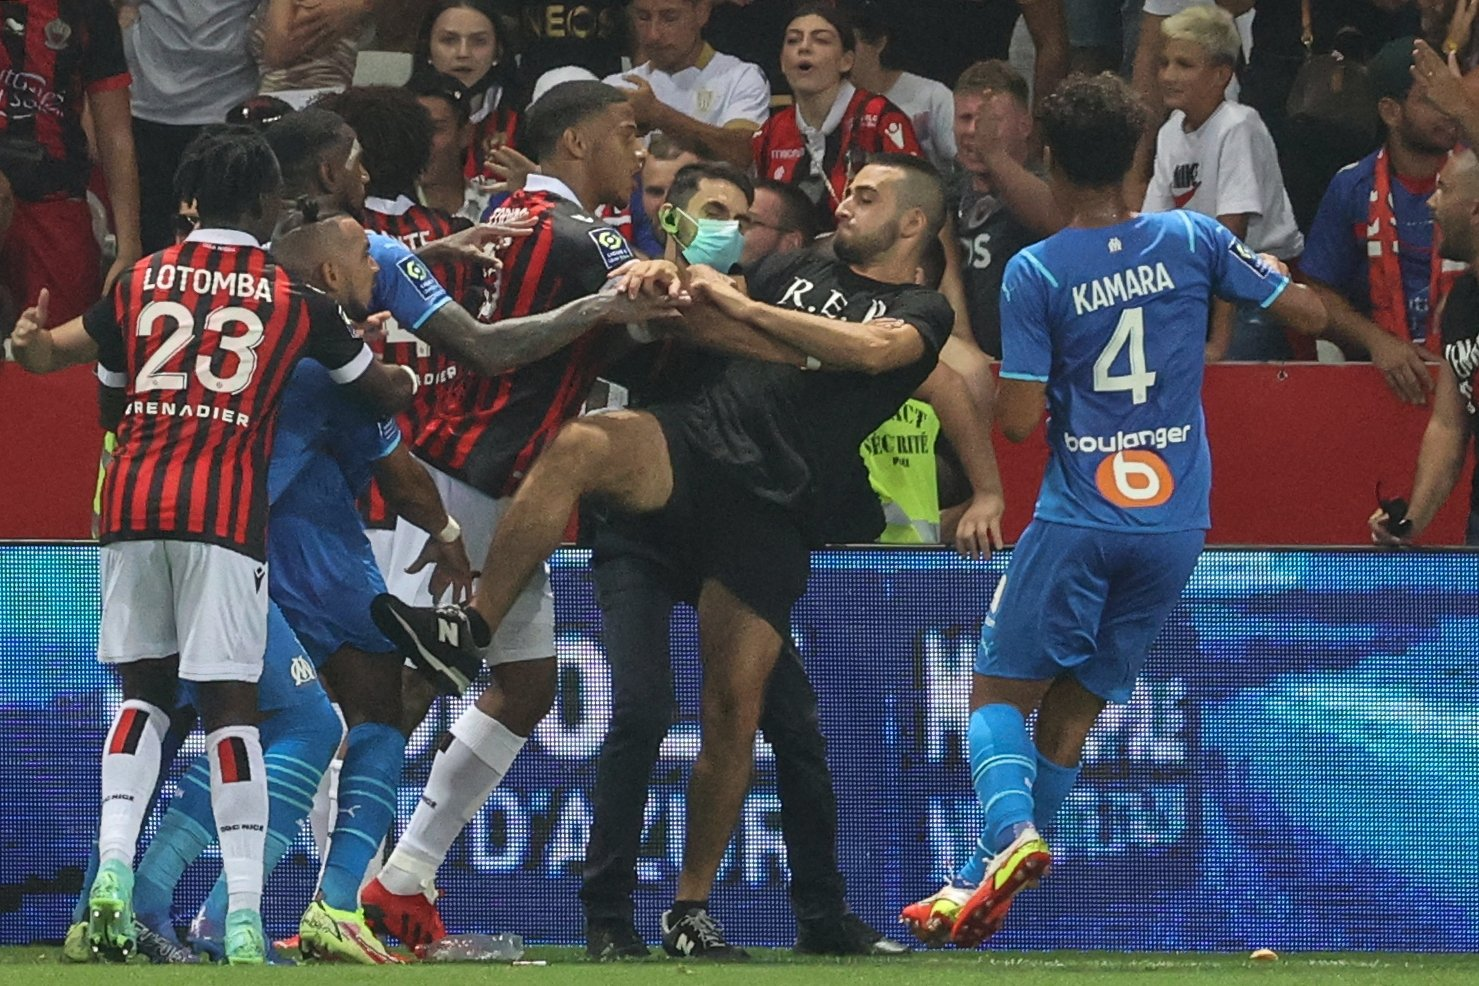 Marseille's French midfielder Dimitri Payet (2nd L) reacts as players from OGC Nice (red and black jersey) and Olympique de Marseille (blue jersey) stop a fan invading the pitch trying to kick Payet during Ligue 1 match at the Allianz Riviera stadium in Nice, southern France, Aug. 22, 2021. (AFP Photo)